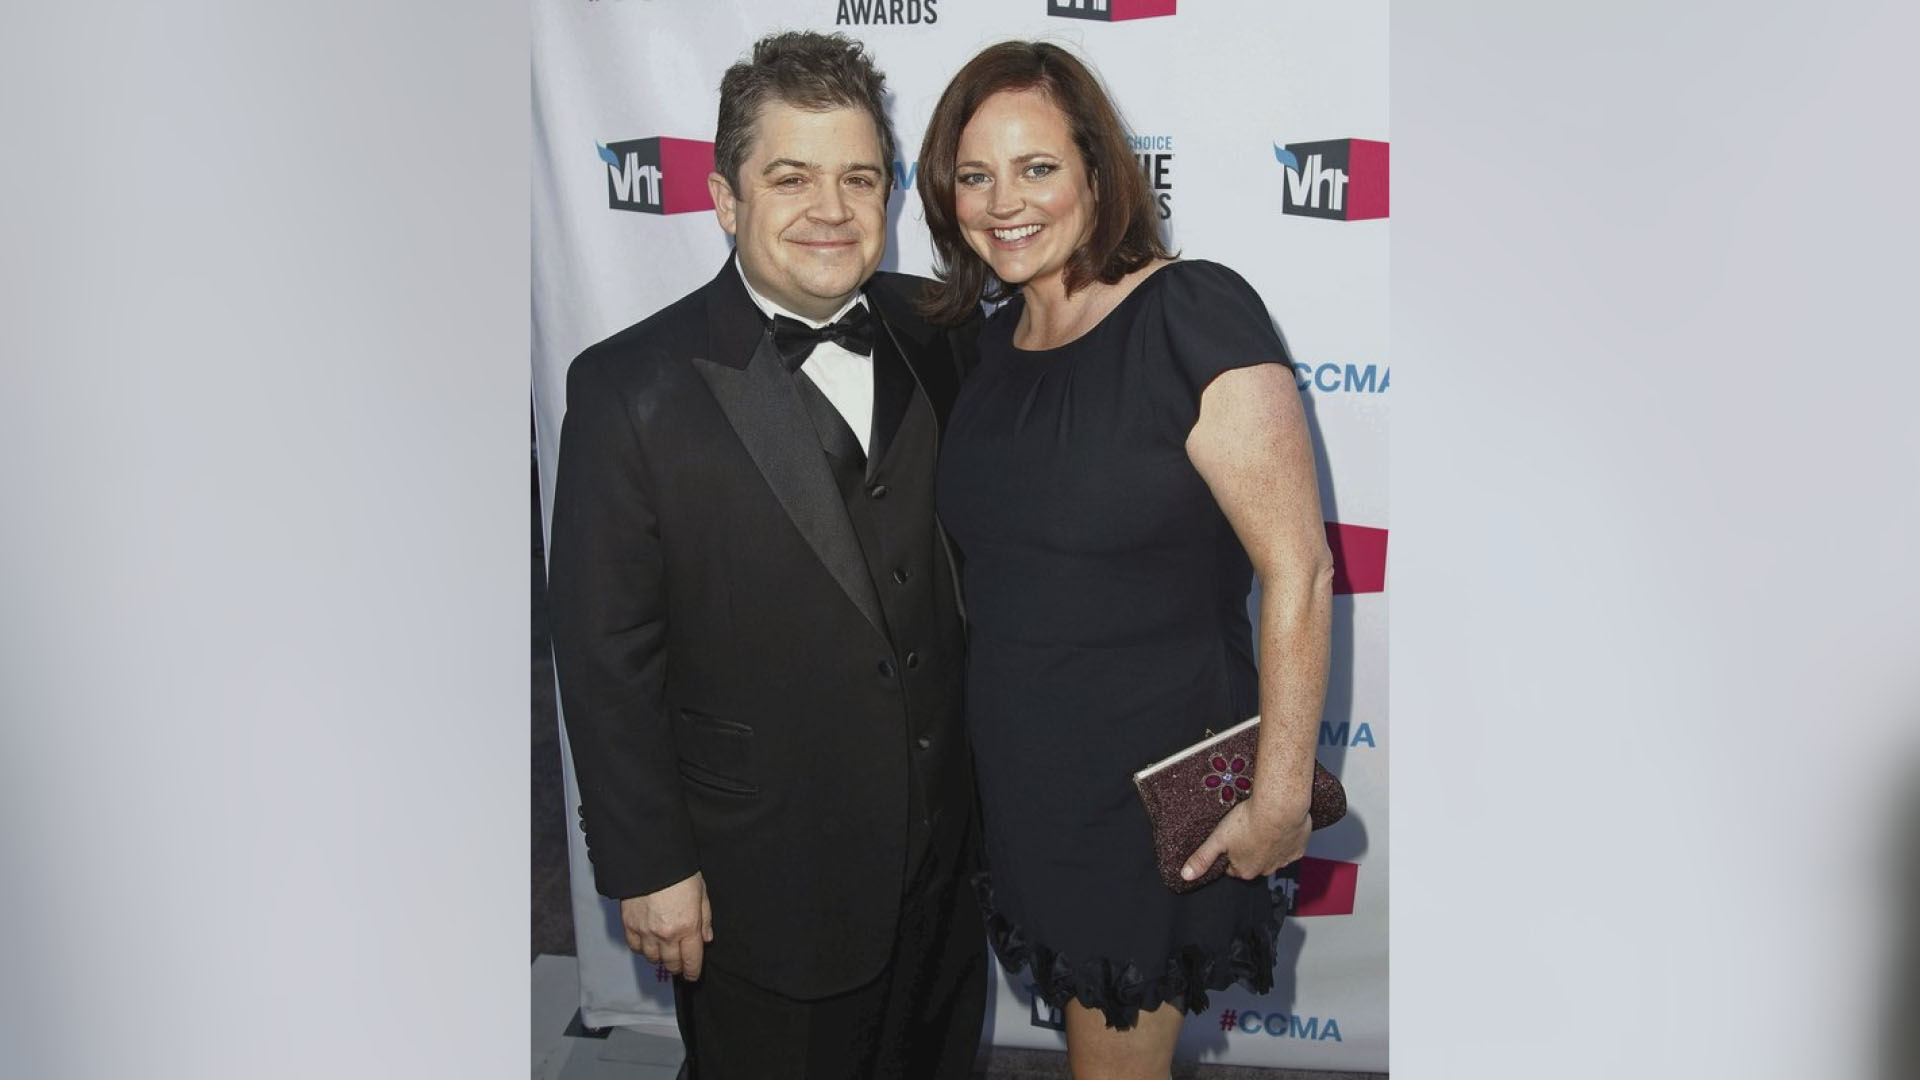 Patton Oswalt Credits Late Wife In Golden State Killer Case